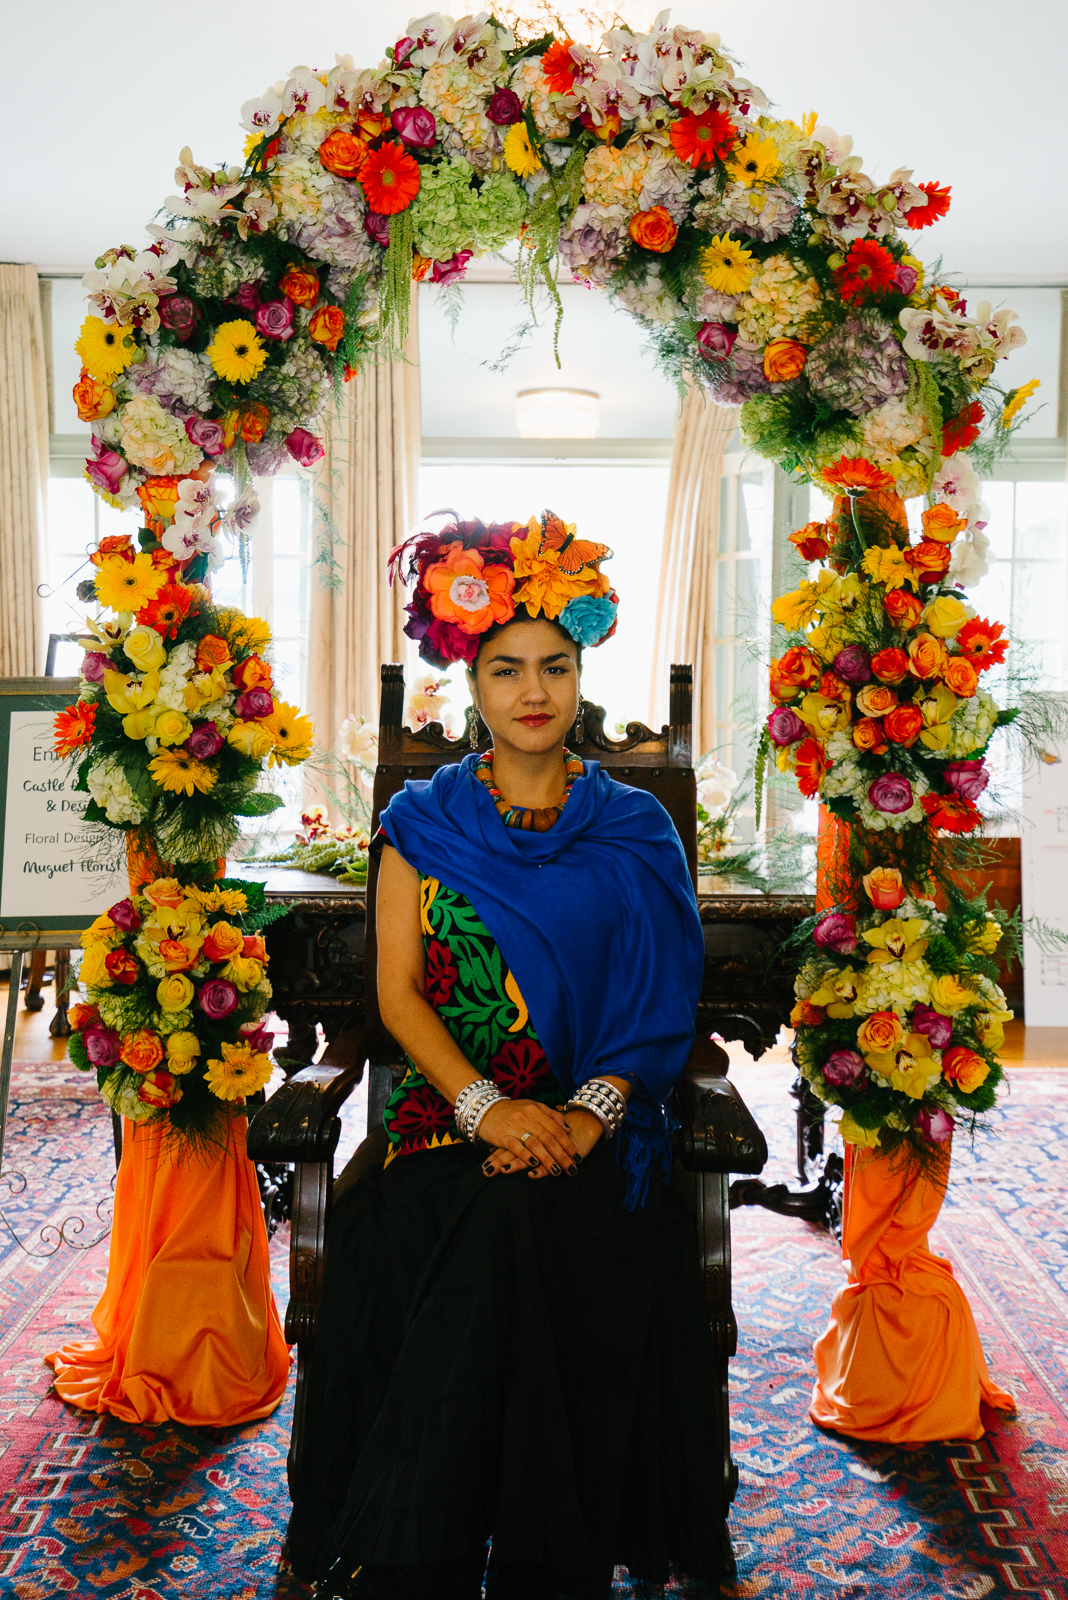 Our very own Frida Kahlo greeted guests as they arrived to VRG.